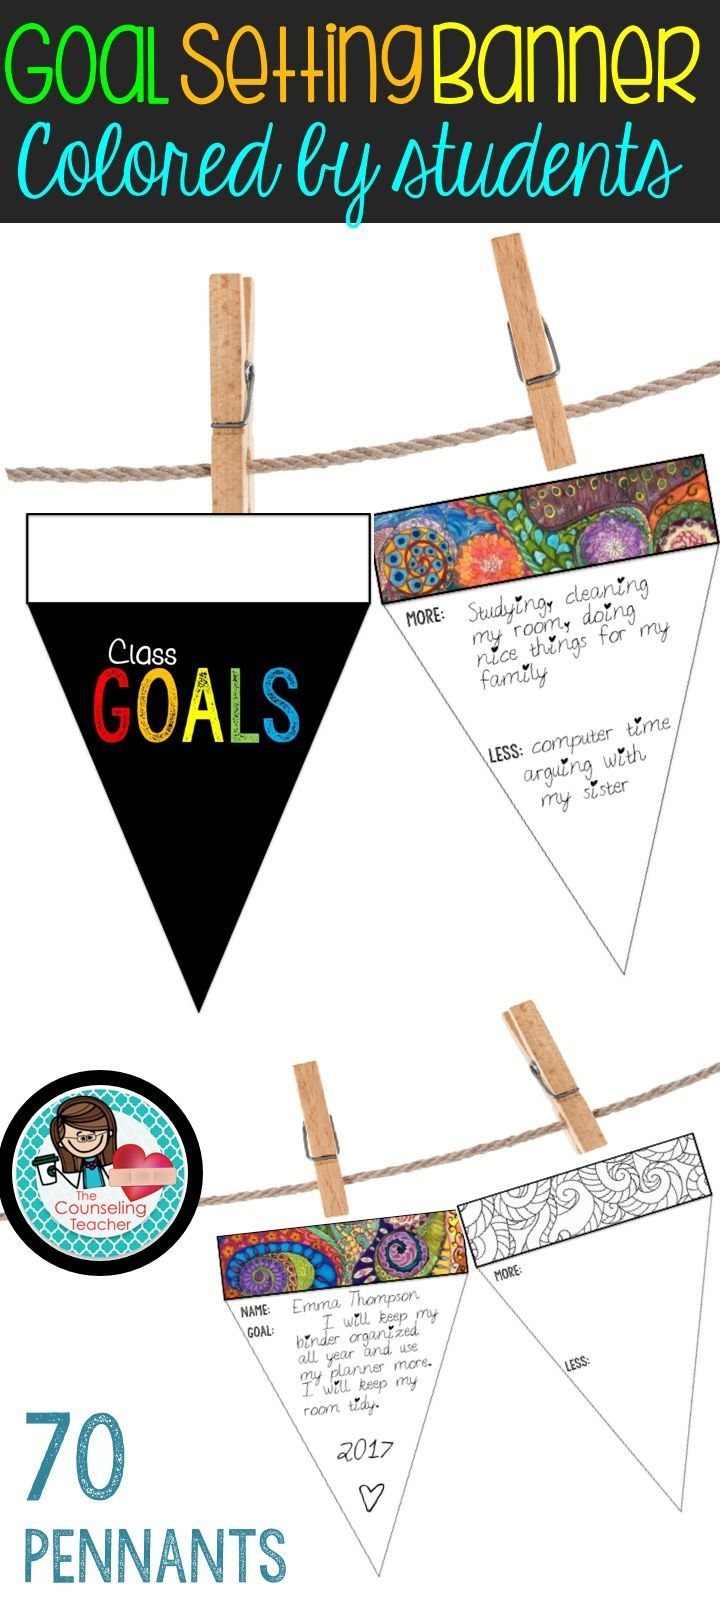 Need a fun, relaxing activity to promote goal setting and New Year's resolutions? This calming coloring activity allows students to color away stress while also creating attainable goals for the new year. Students decorate two banners each. Put all of the banners together on a string with clothespins for display. Principals and parents will be impressed by this super cute, functional design element in your office or classroom.